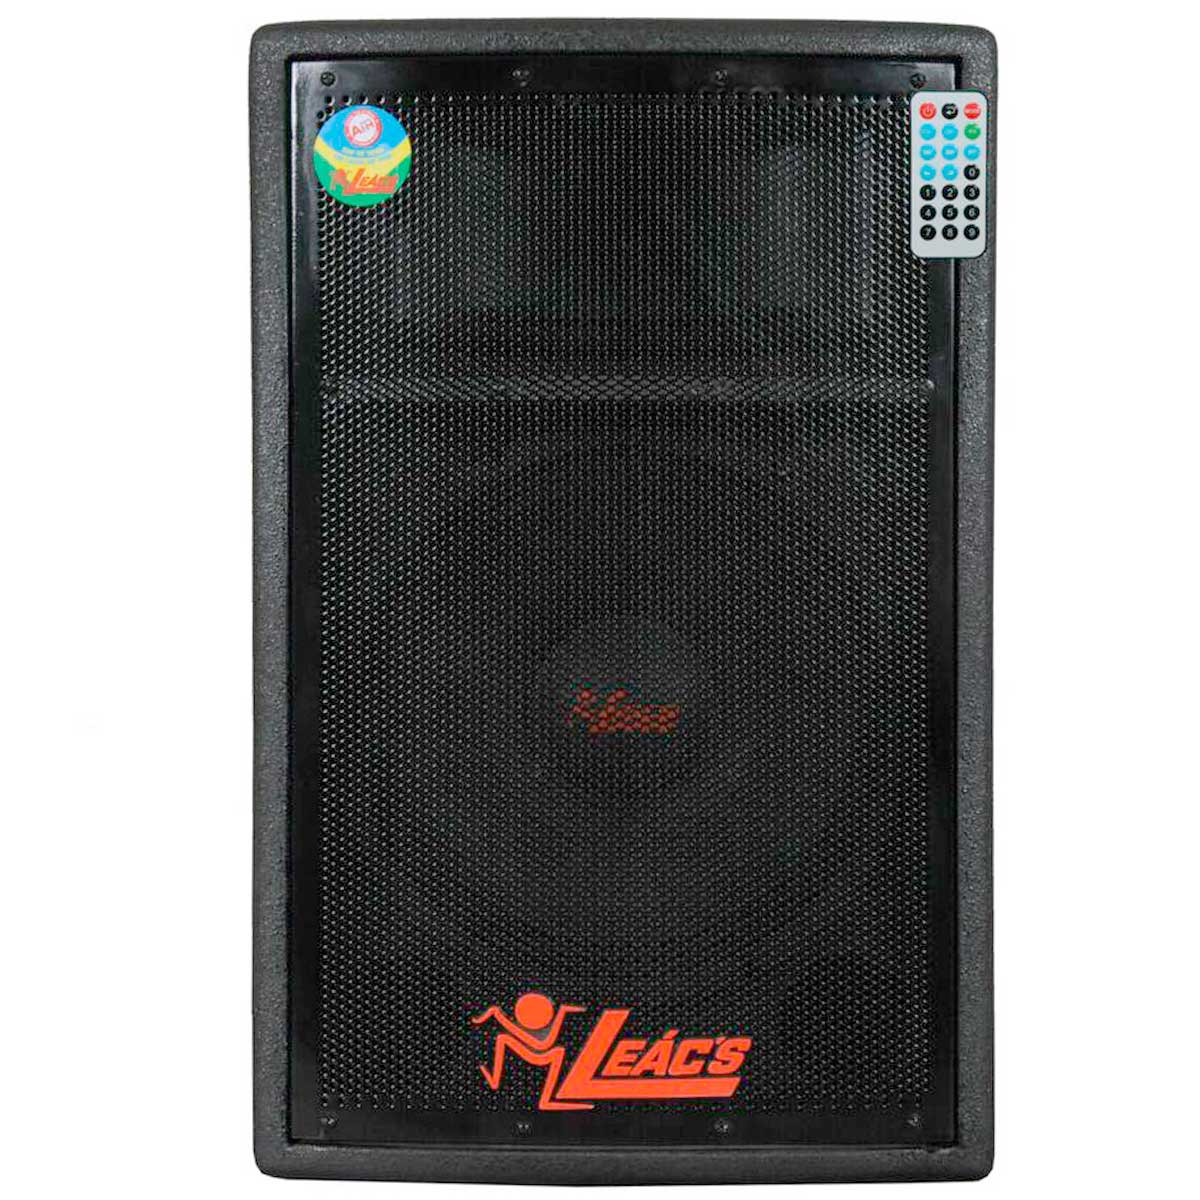 550A - Caixa Ativa 200W c/ Player USB Pulps 550 A - Leacs